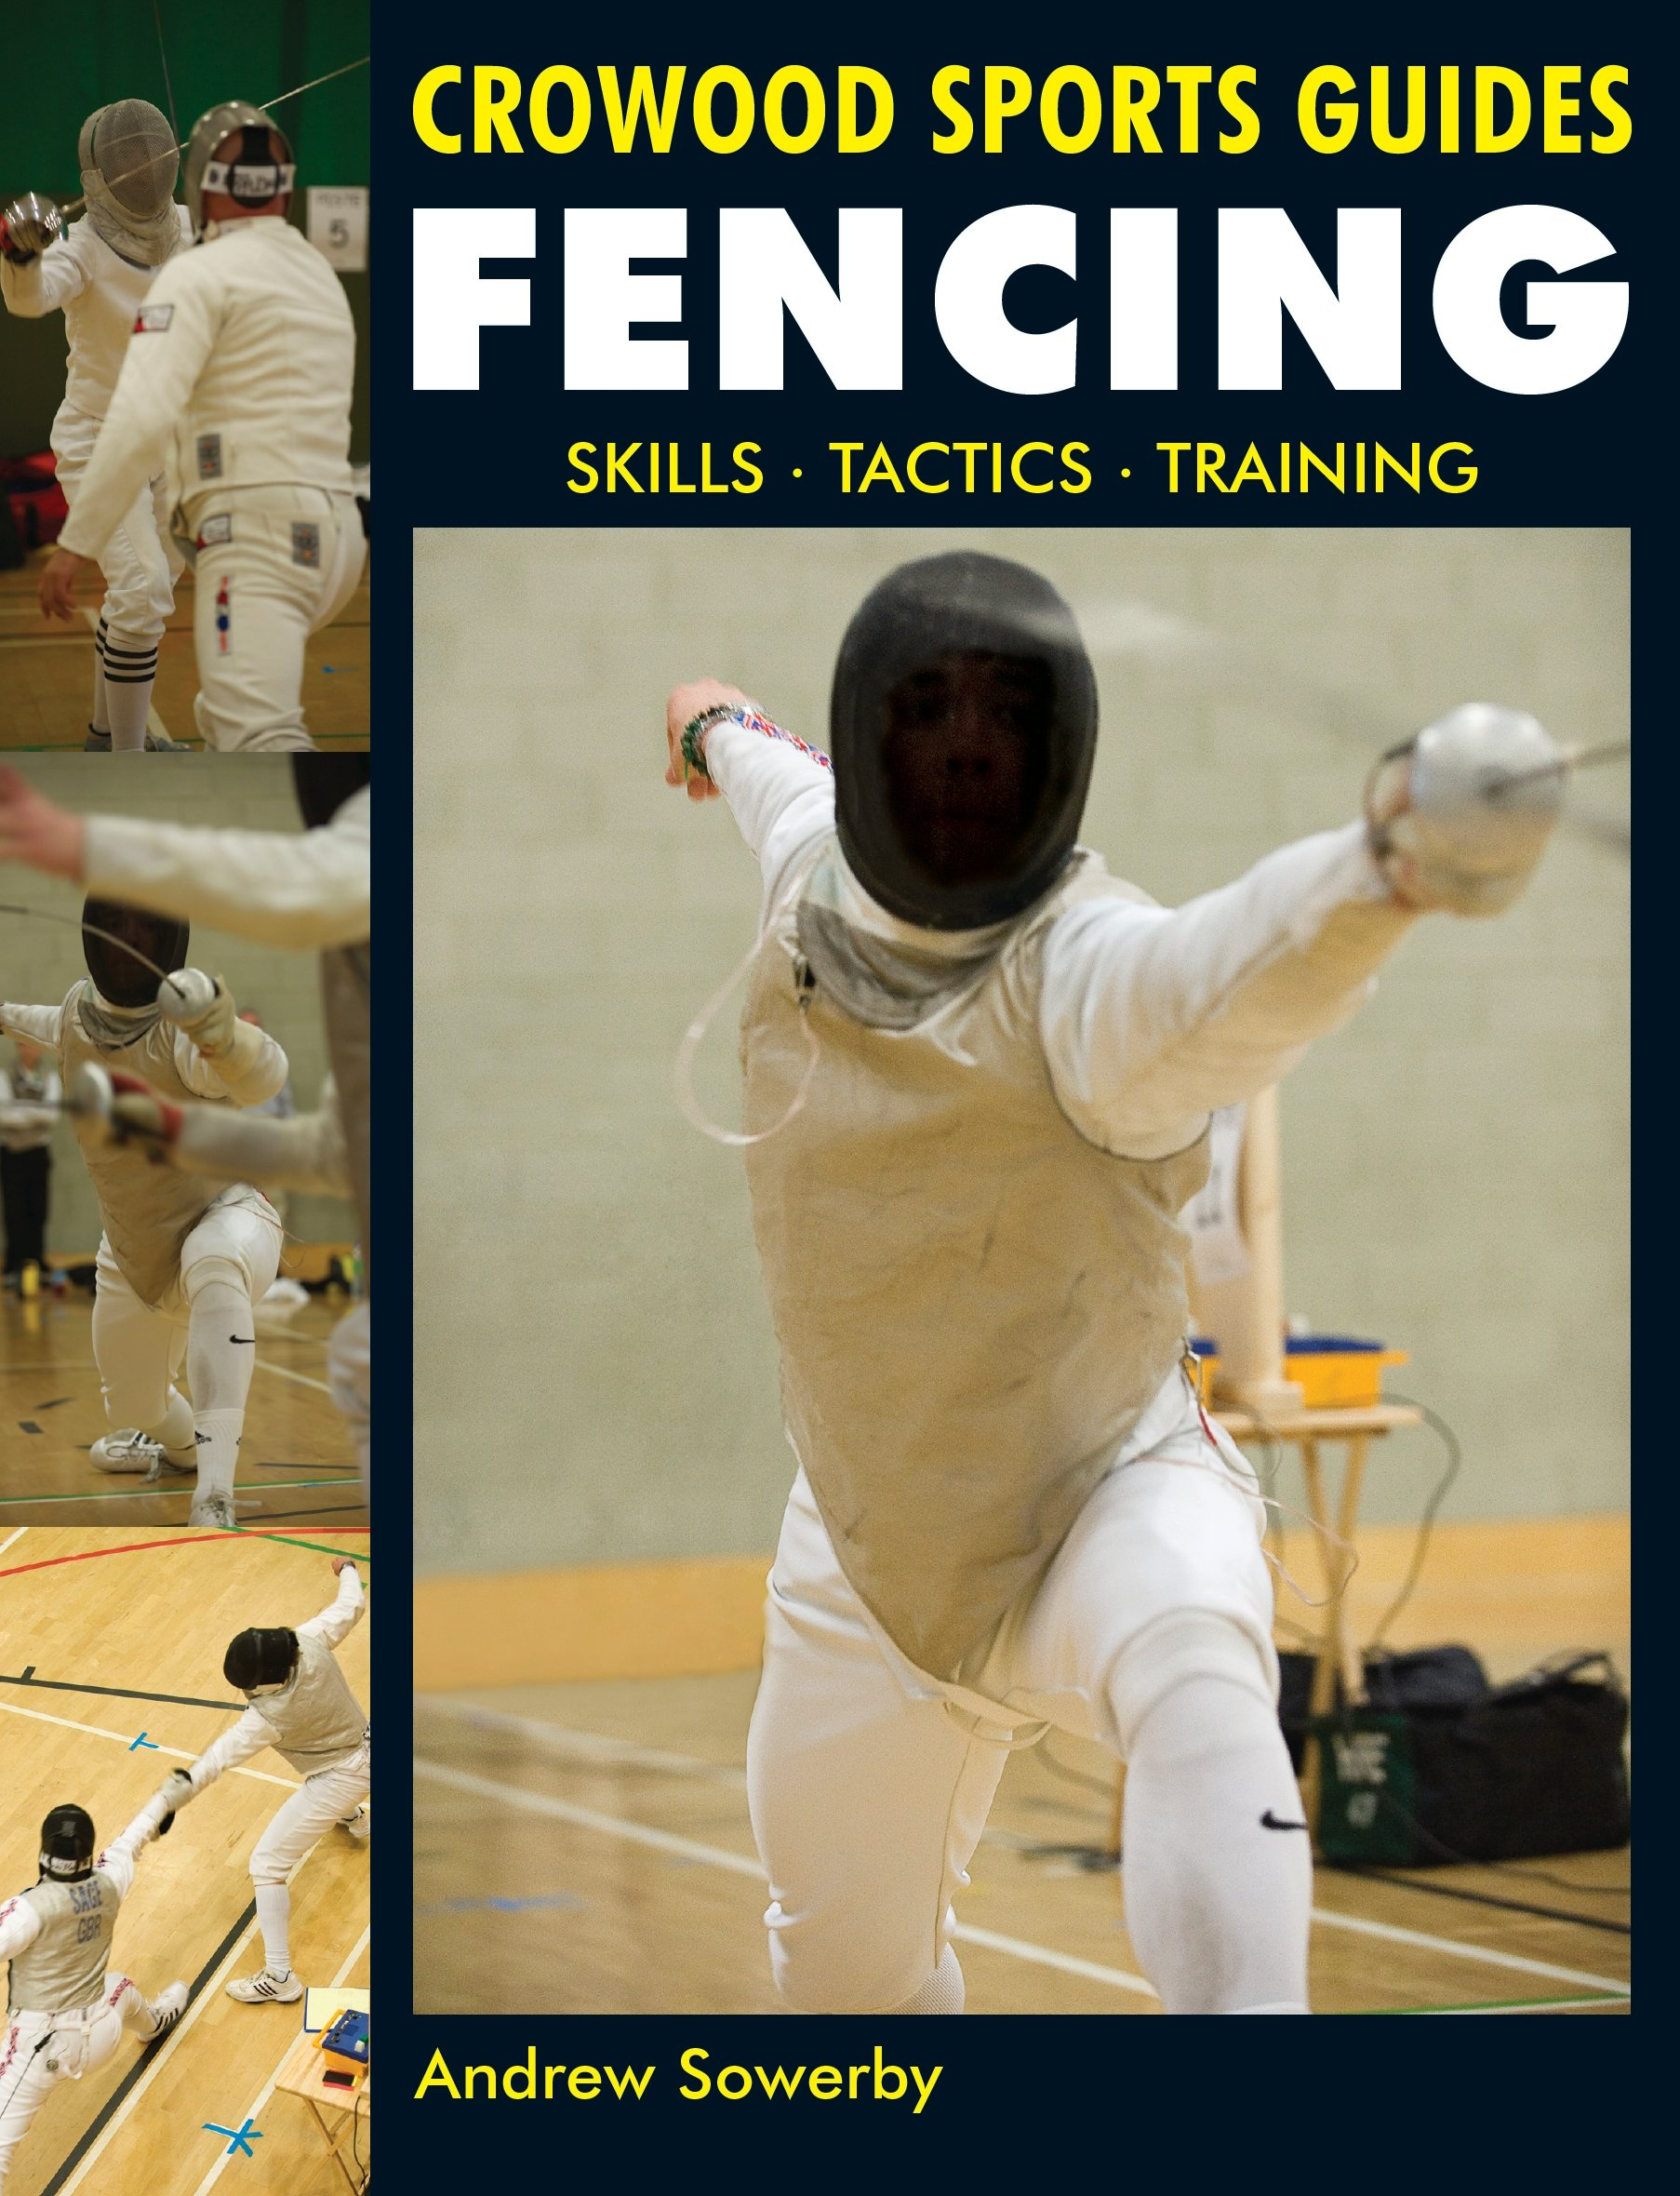 Fencing: Skills. Tactics. Training (Crowood Sports Guides) (English Edition)